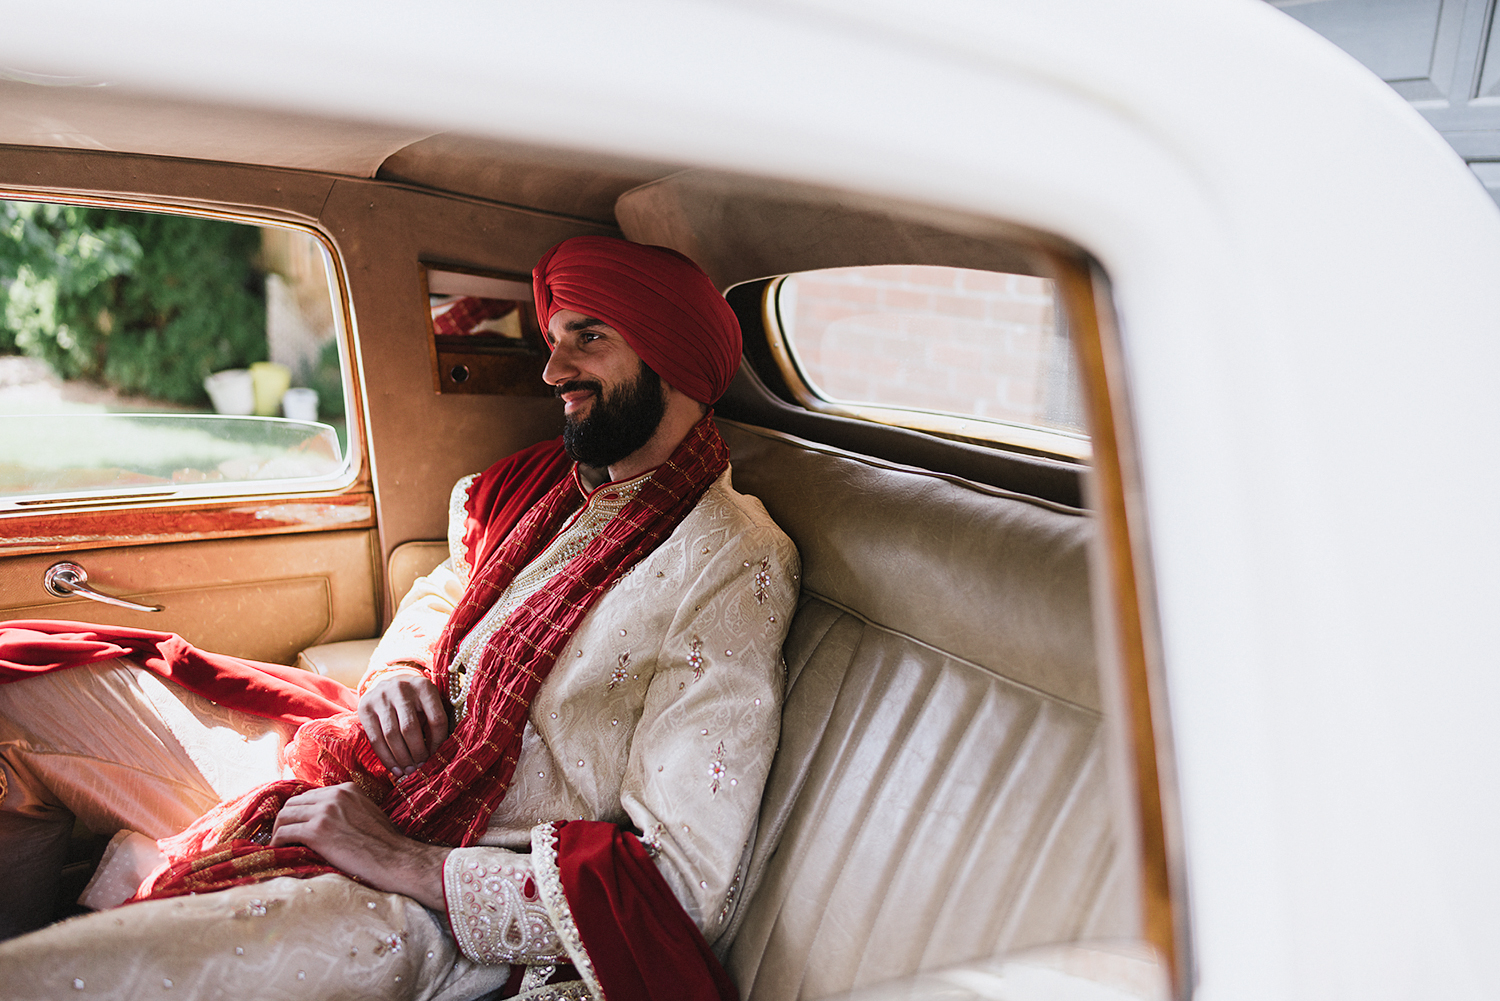 Toronto-Photojournalism-wedding-photographers-3B-Photography-Candid-Documentary-Film-Photography-Analog-Ontario-Hamilton-Port-Perry-best-venues-portrait-of-groom-in-traditional-dress-waiting-in-car.jpg